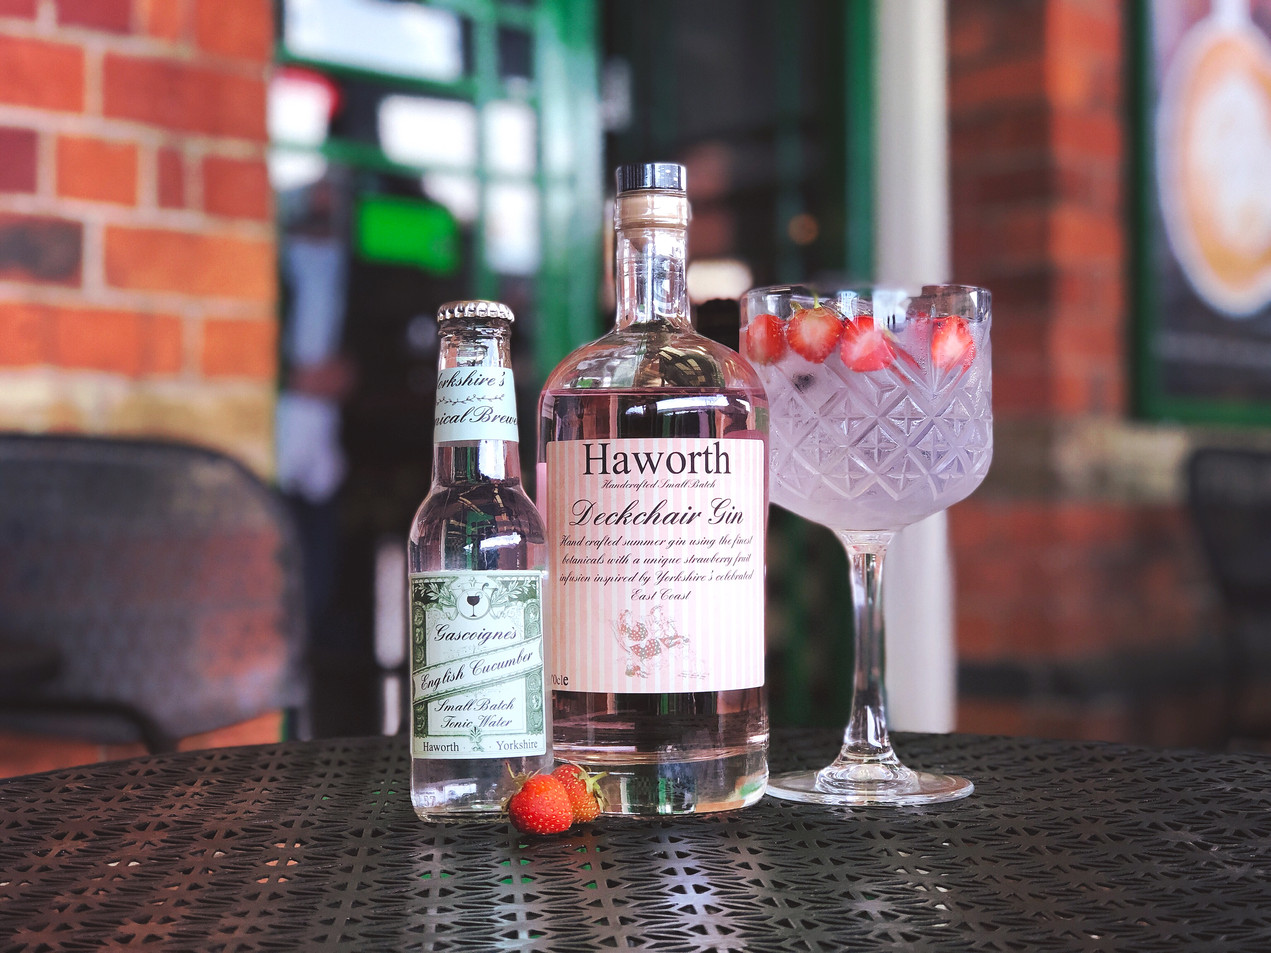 Haworth Deckchair Gin